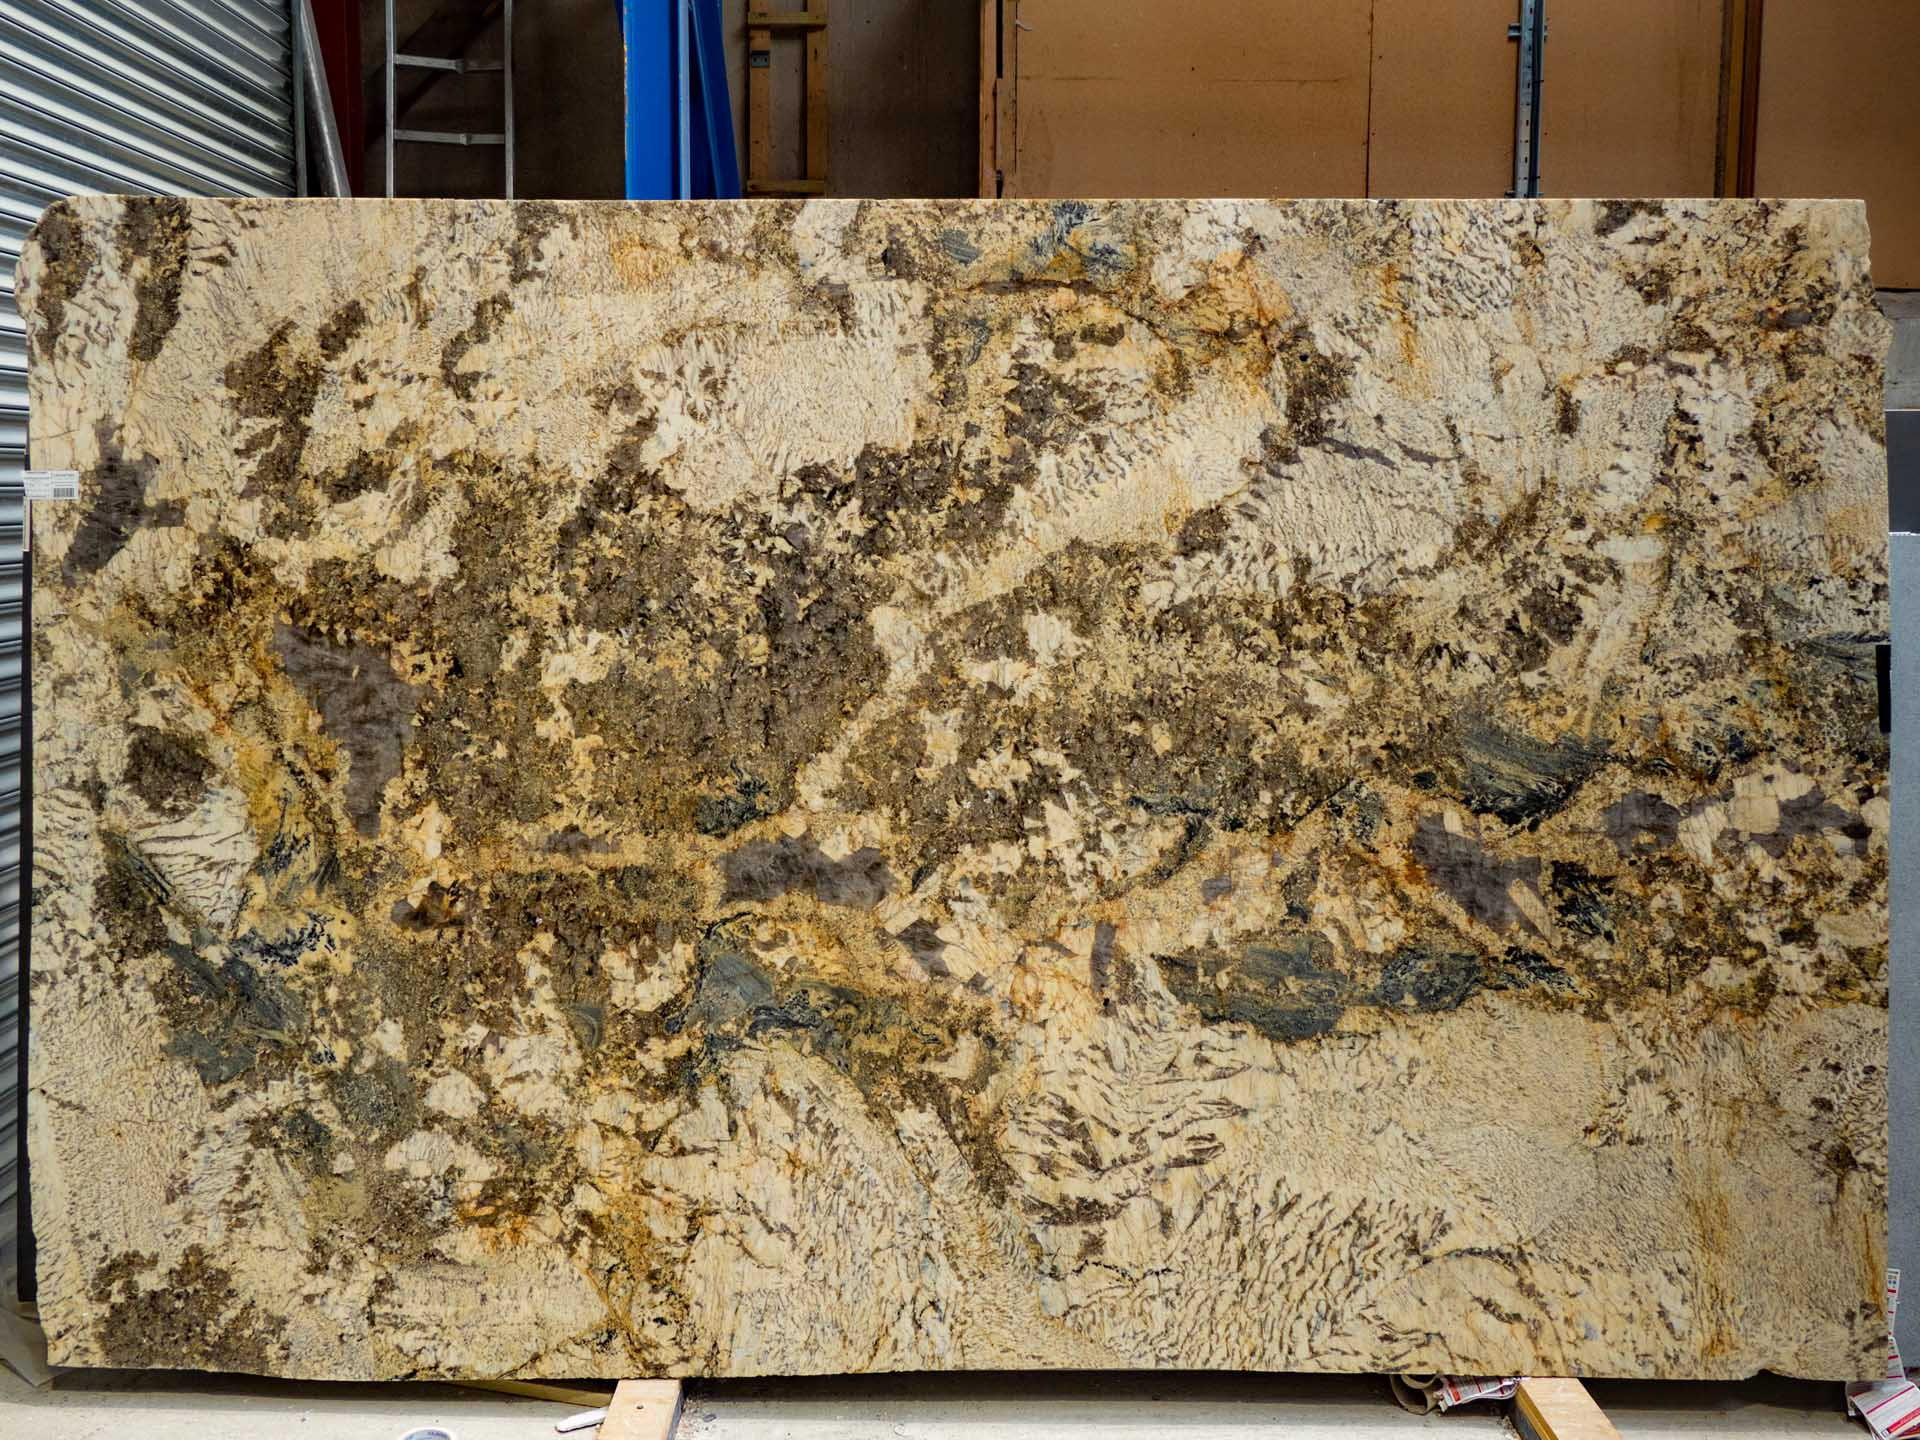 champagne-gold-granite-le180716-33651-143320a